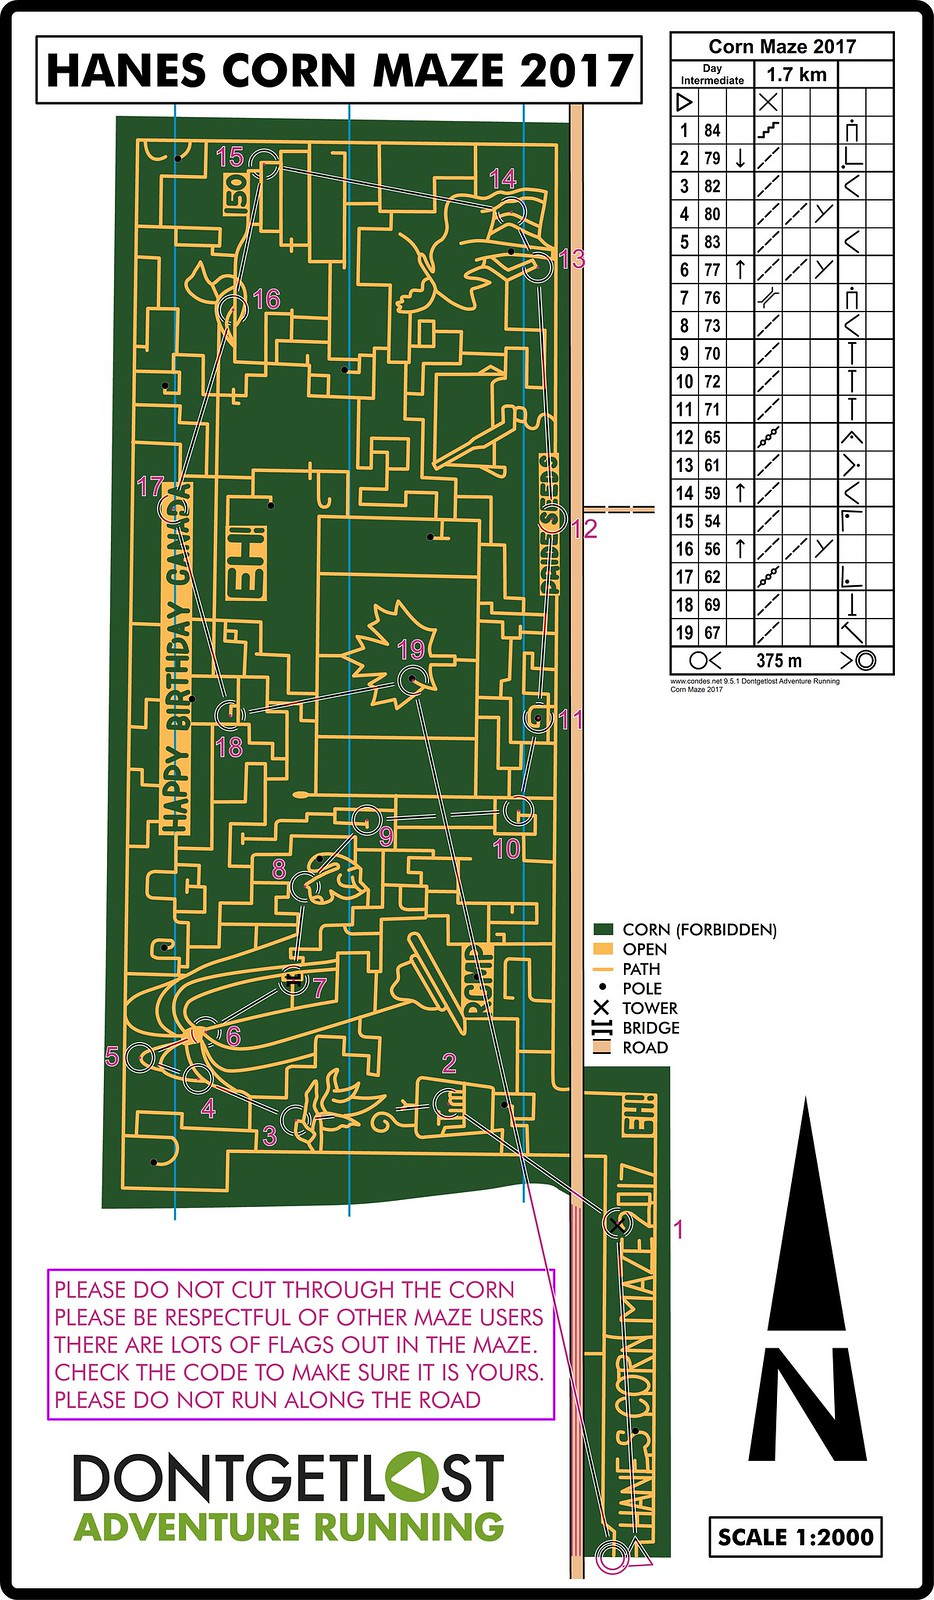 Day Intermediate Corn Maze 2017 Map